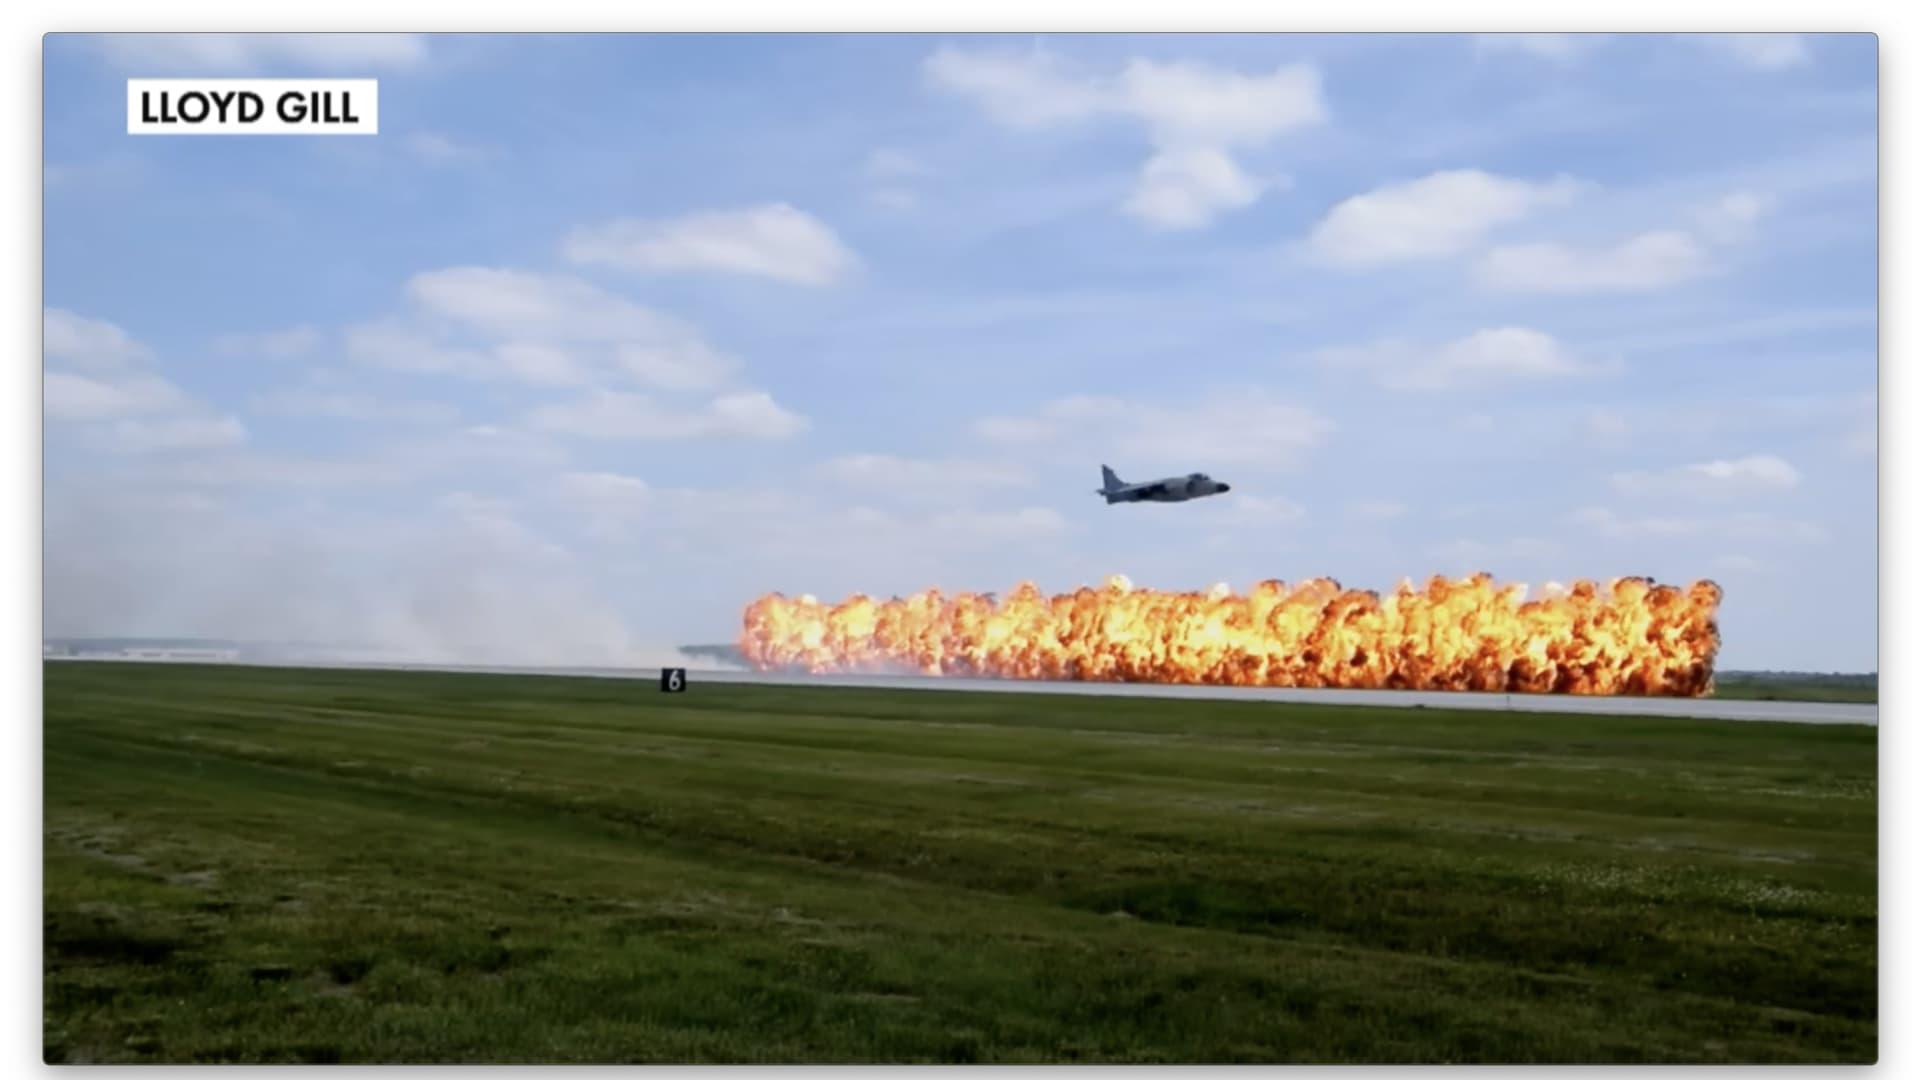 Retired Marine Lt. Col. Art Nalls flies his Harrier in an airshow with pyrotechnics.